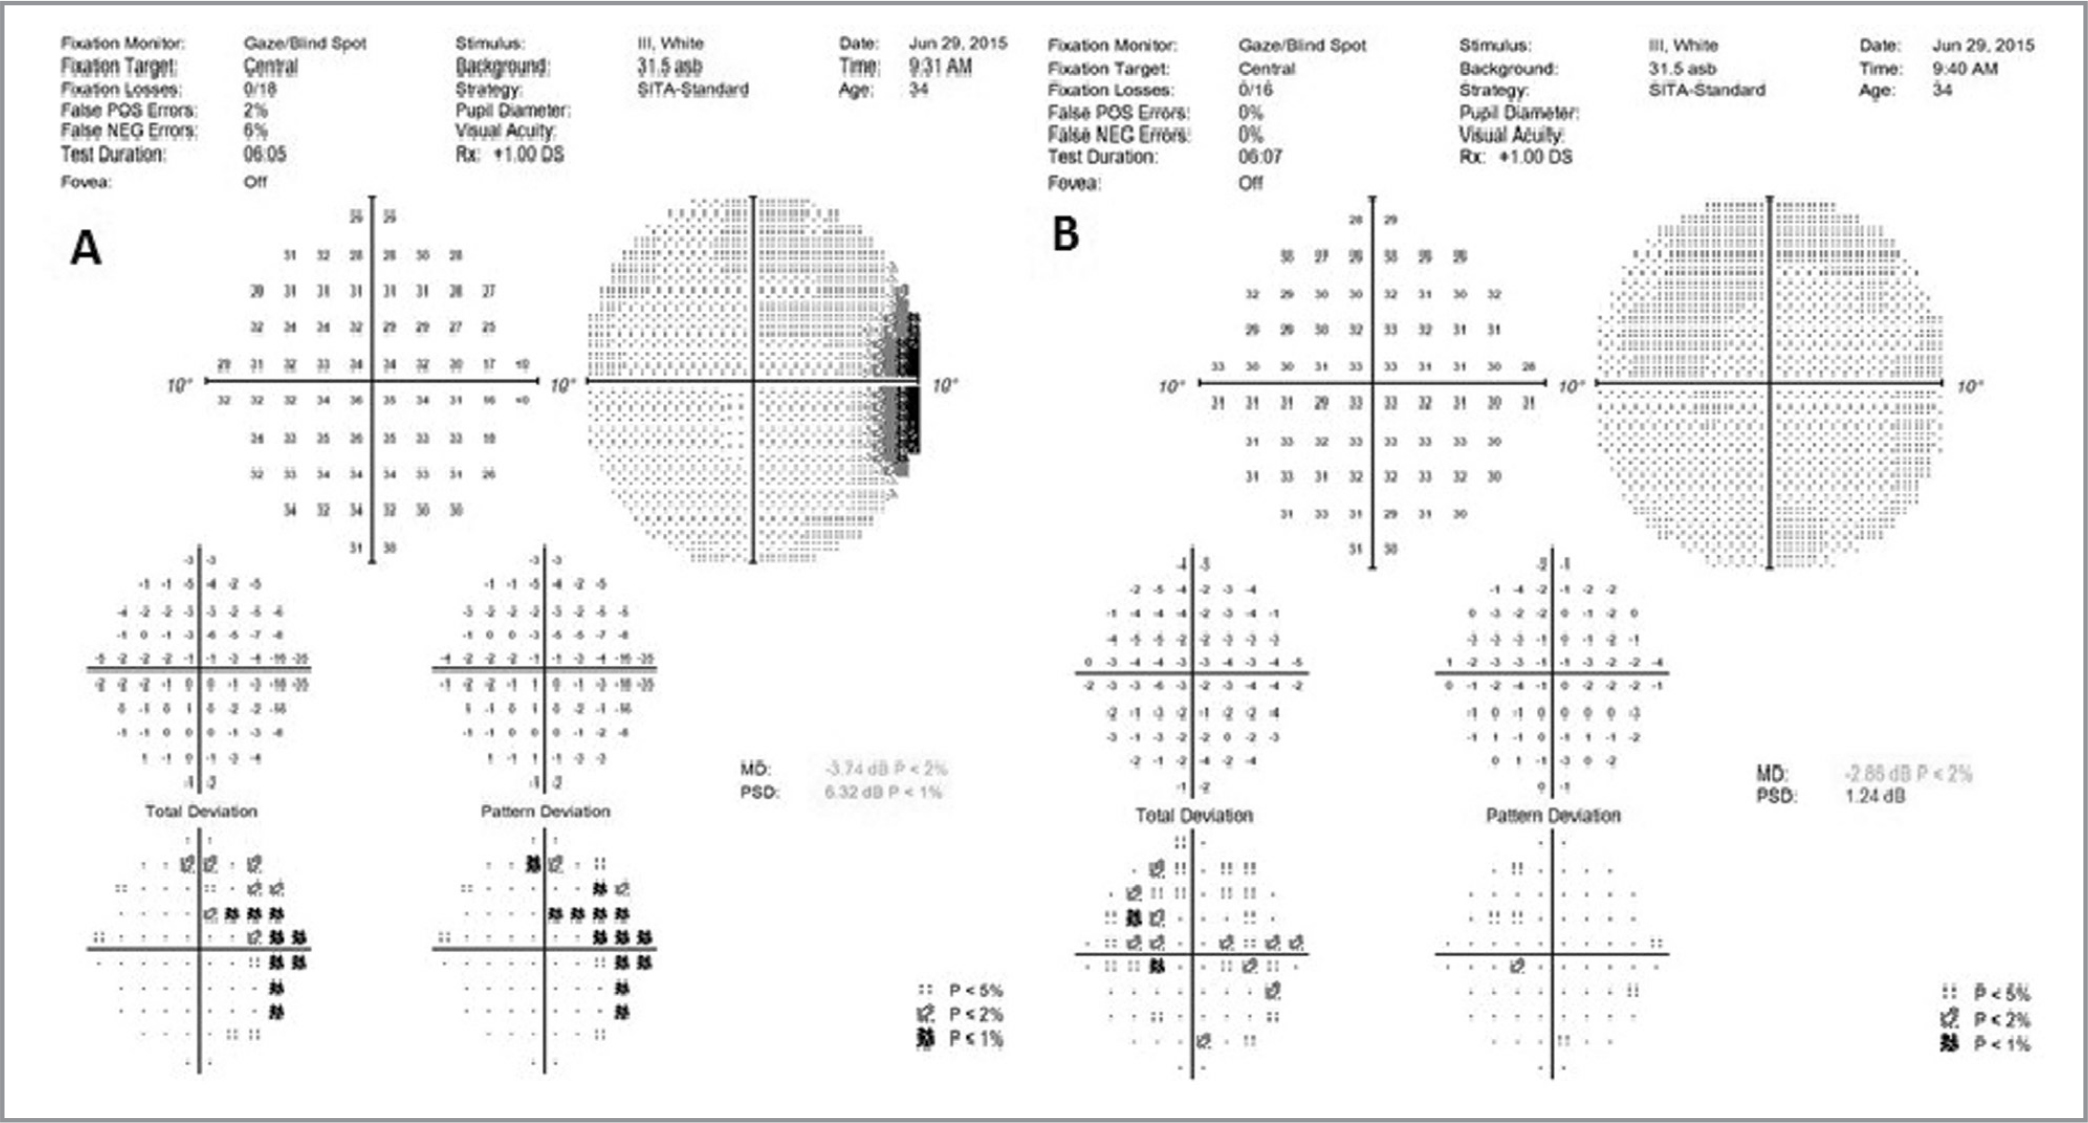 One month following the 2-year follow-up, the 10-2 visual field (VF) revealed a persistent temporal scotoma in the right eye (A). The VF was unchanged in the left eye (B).